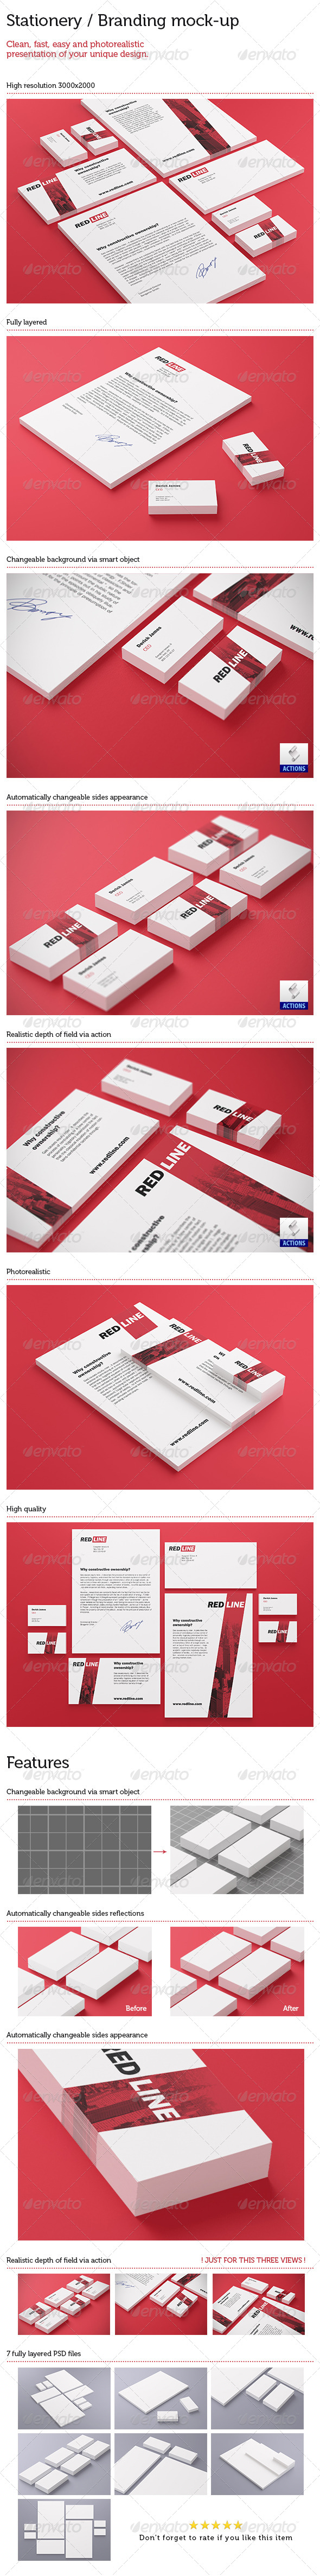 GraphicRiver Stationery Branding Mock Up 5587044